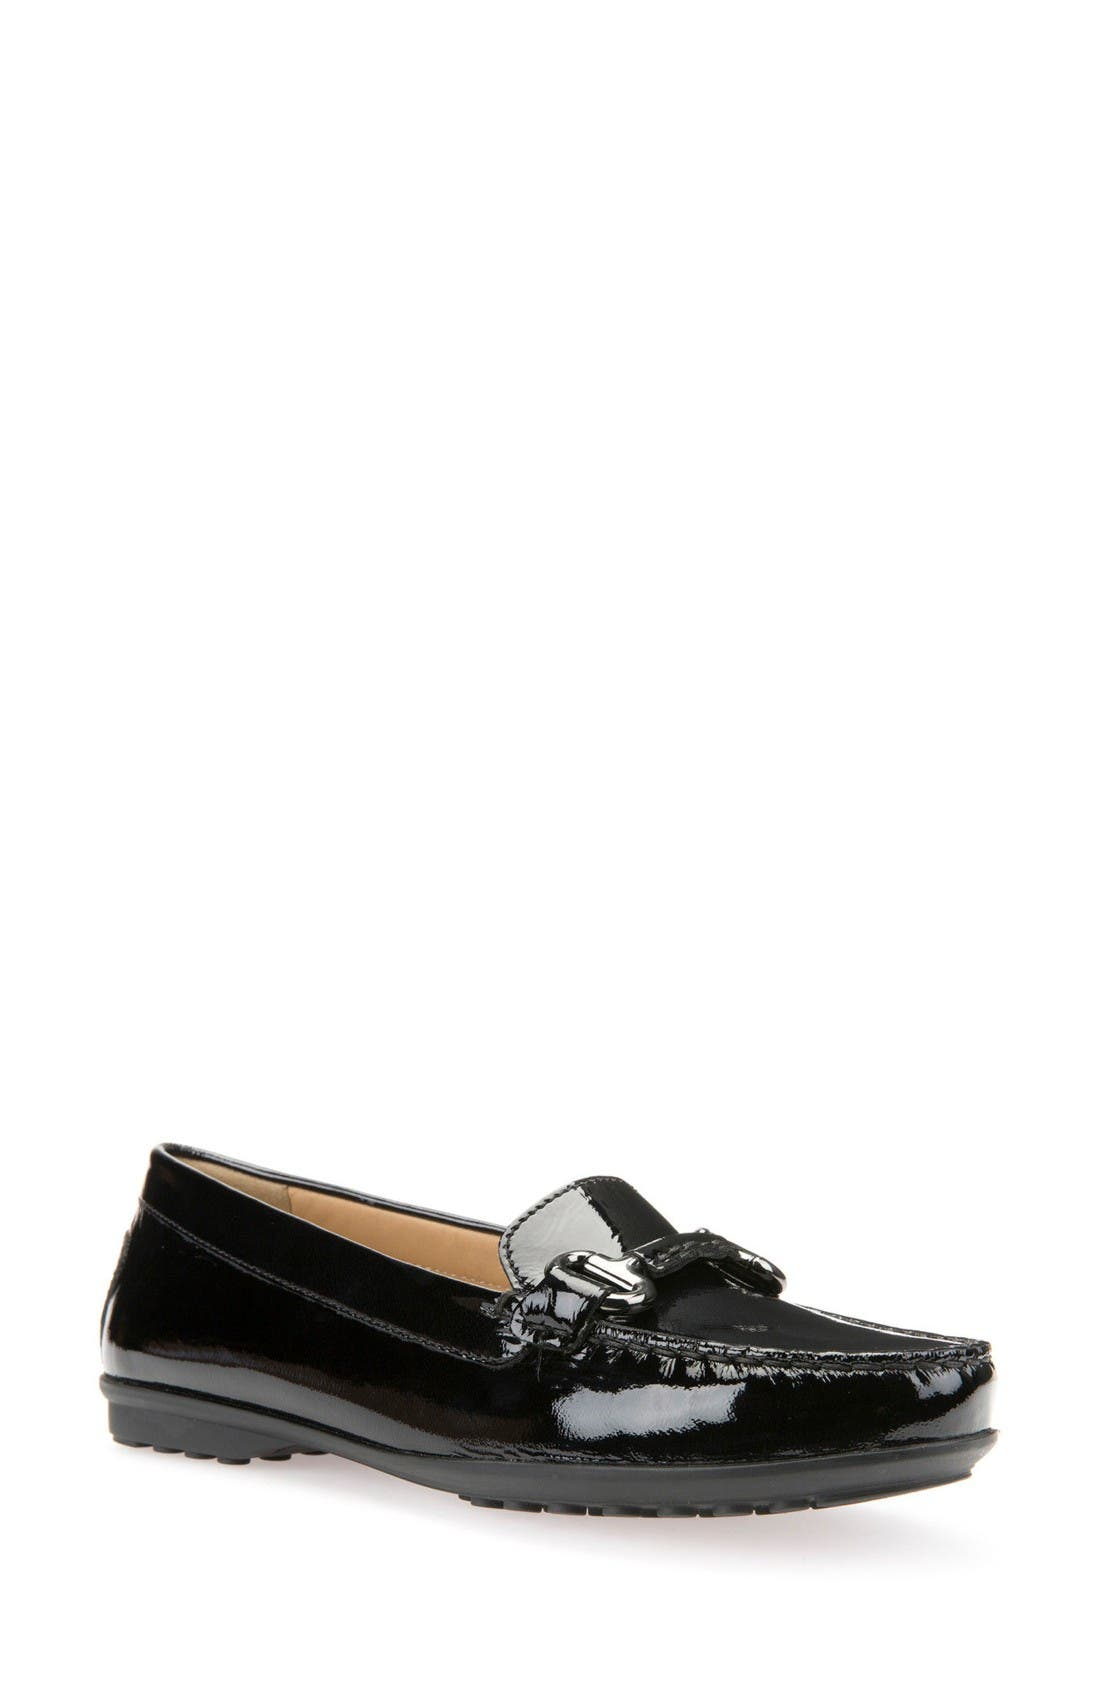 Main Image - Geox Elidia Bit Water Resistant Loafer (Women)